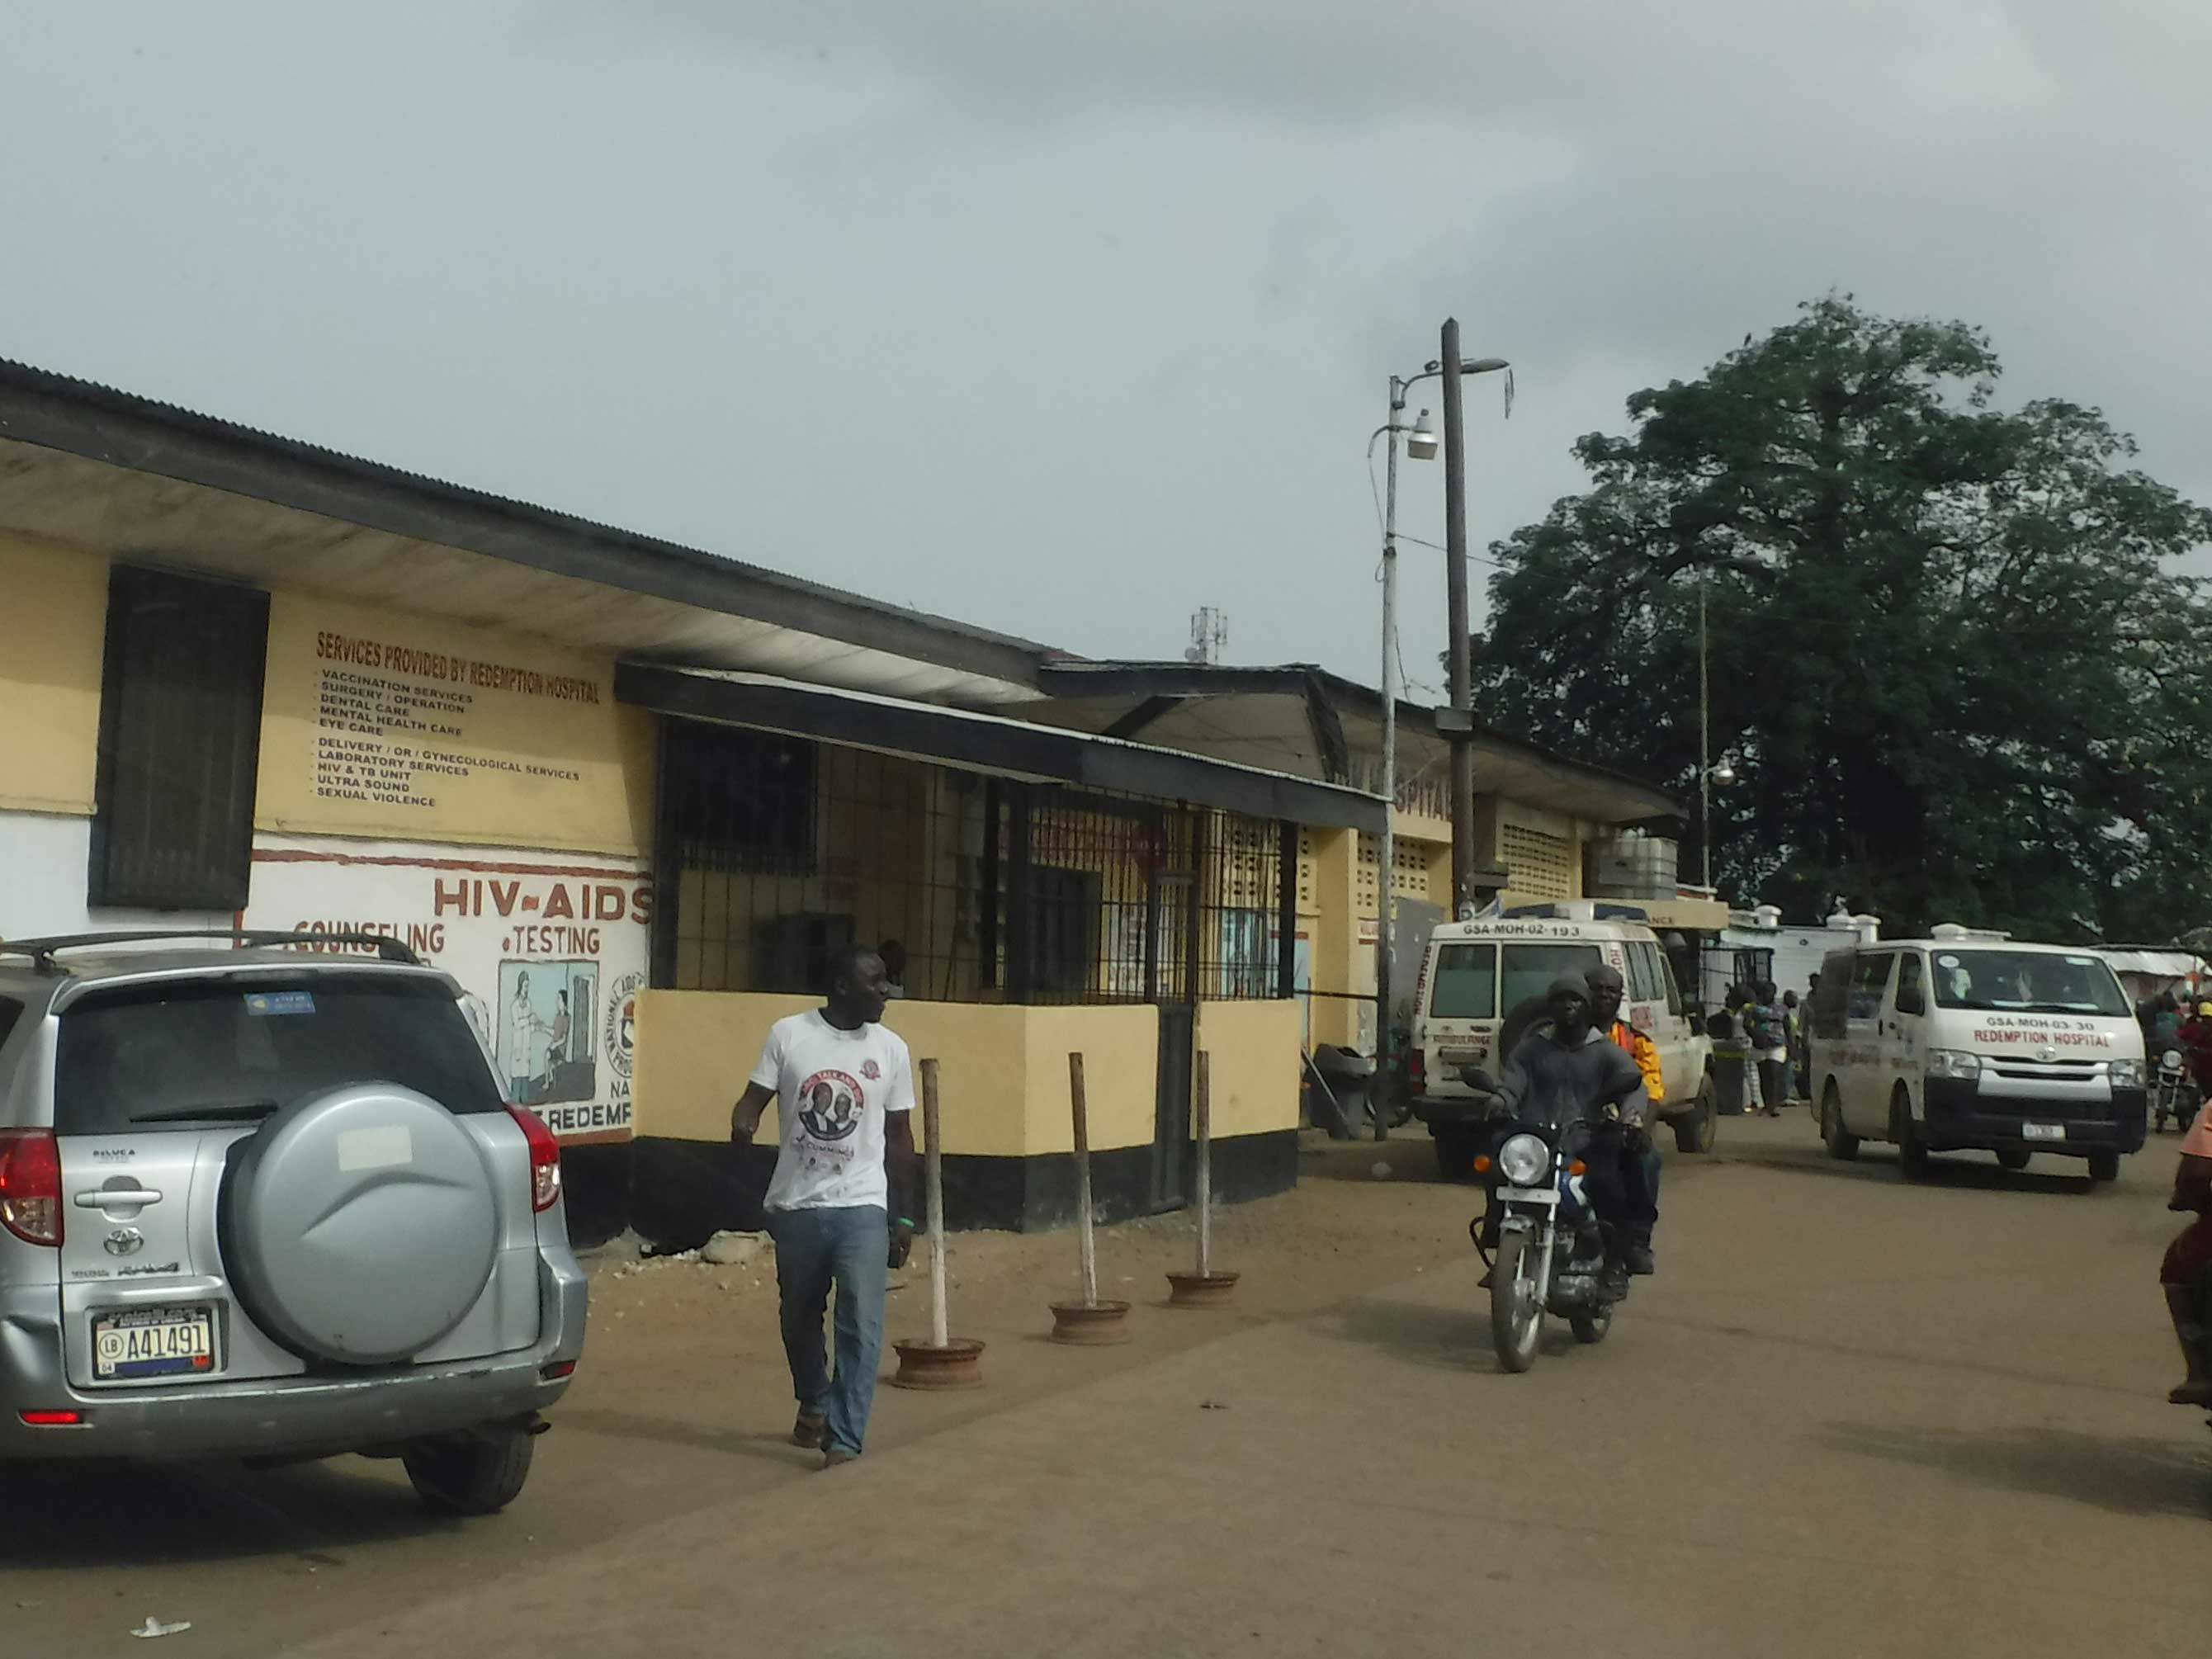 Midland Lead provide radiation protection for healthcare in Liberia